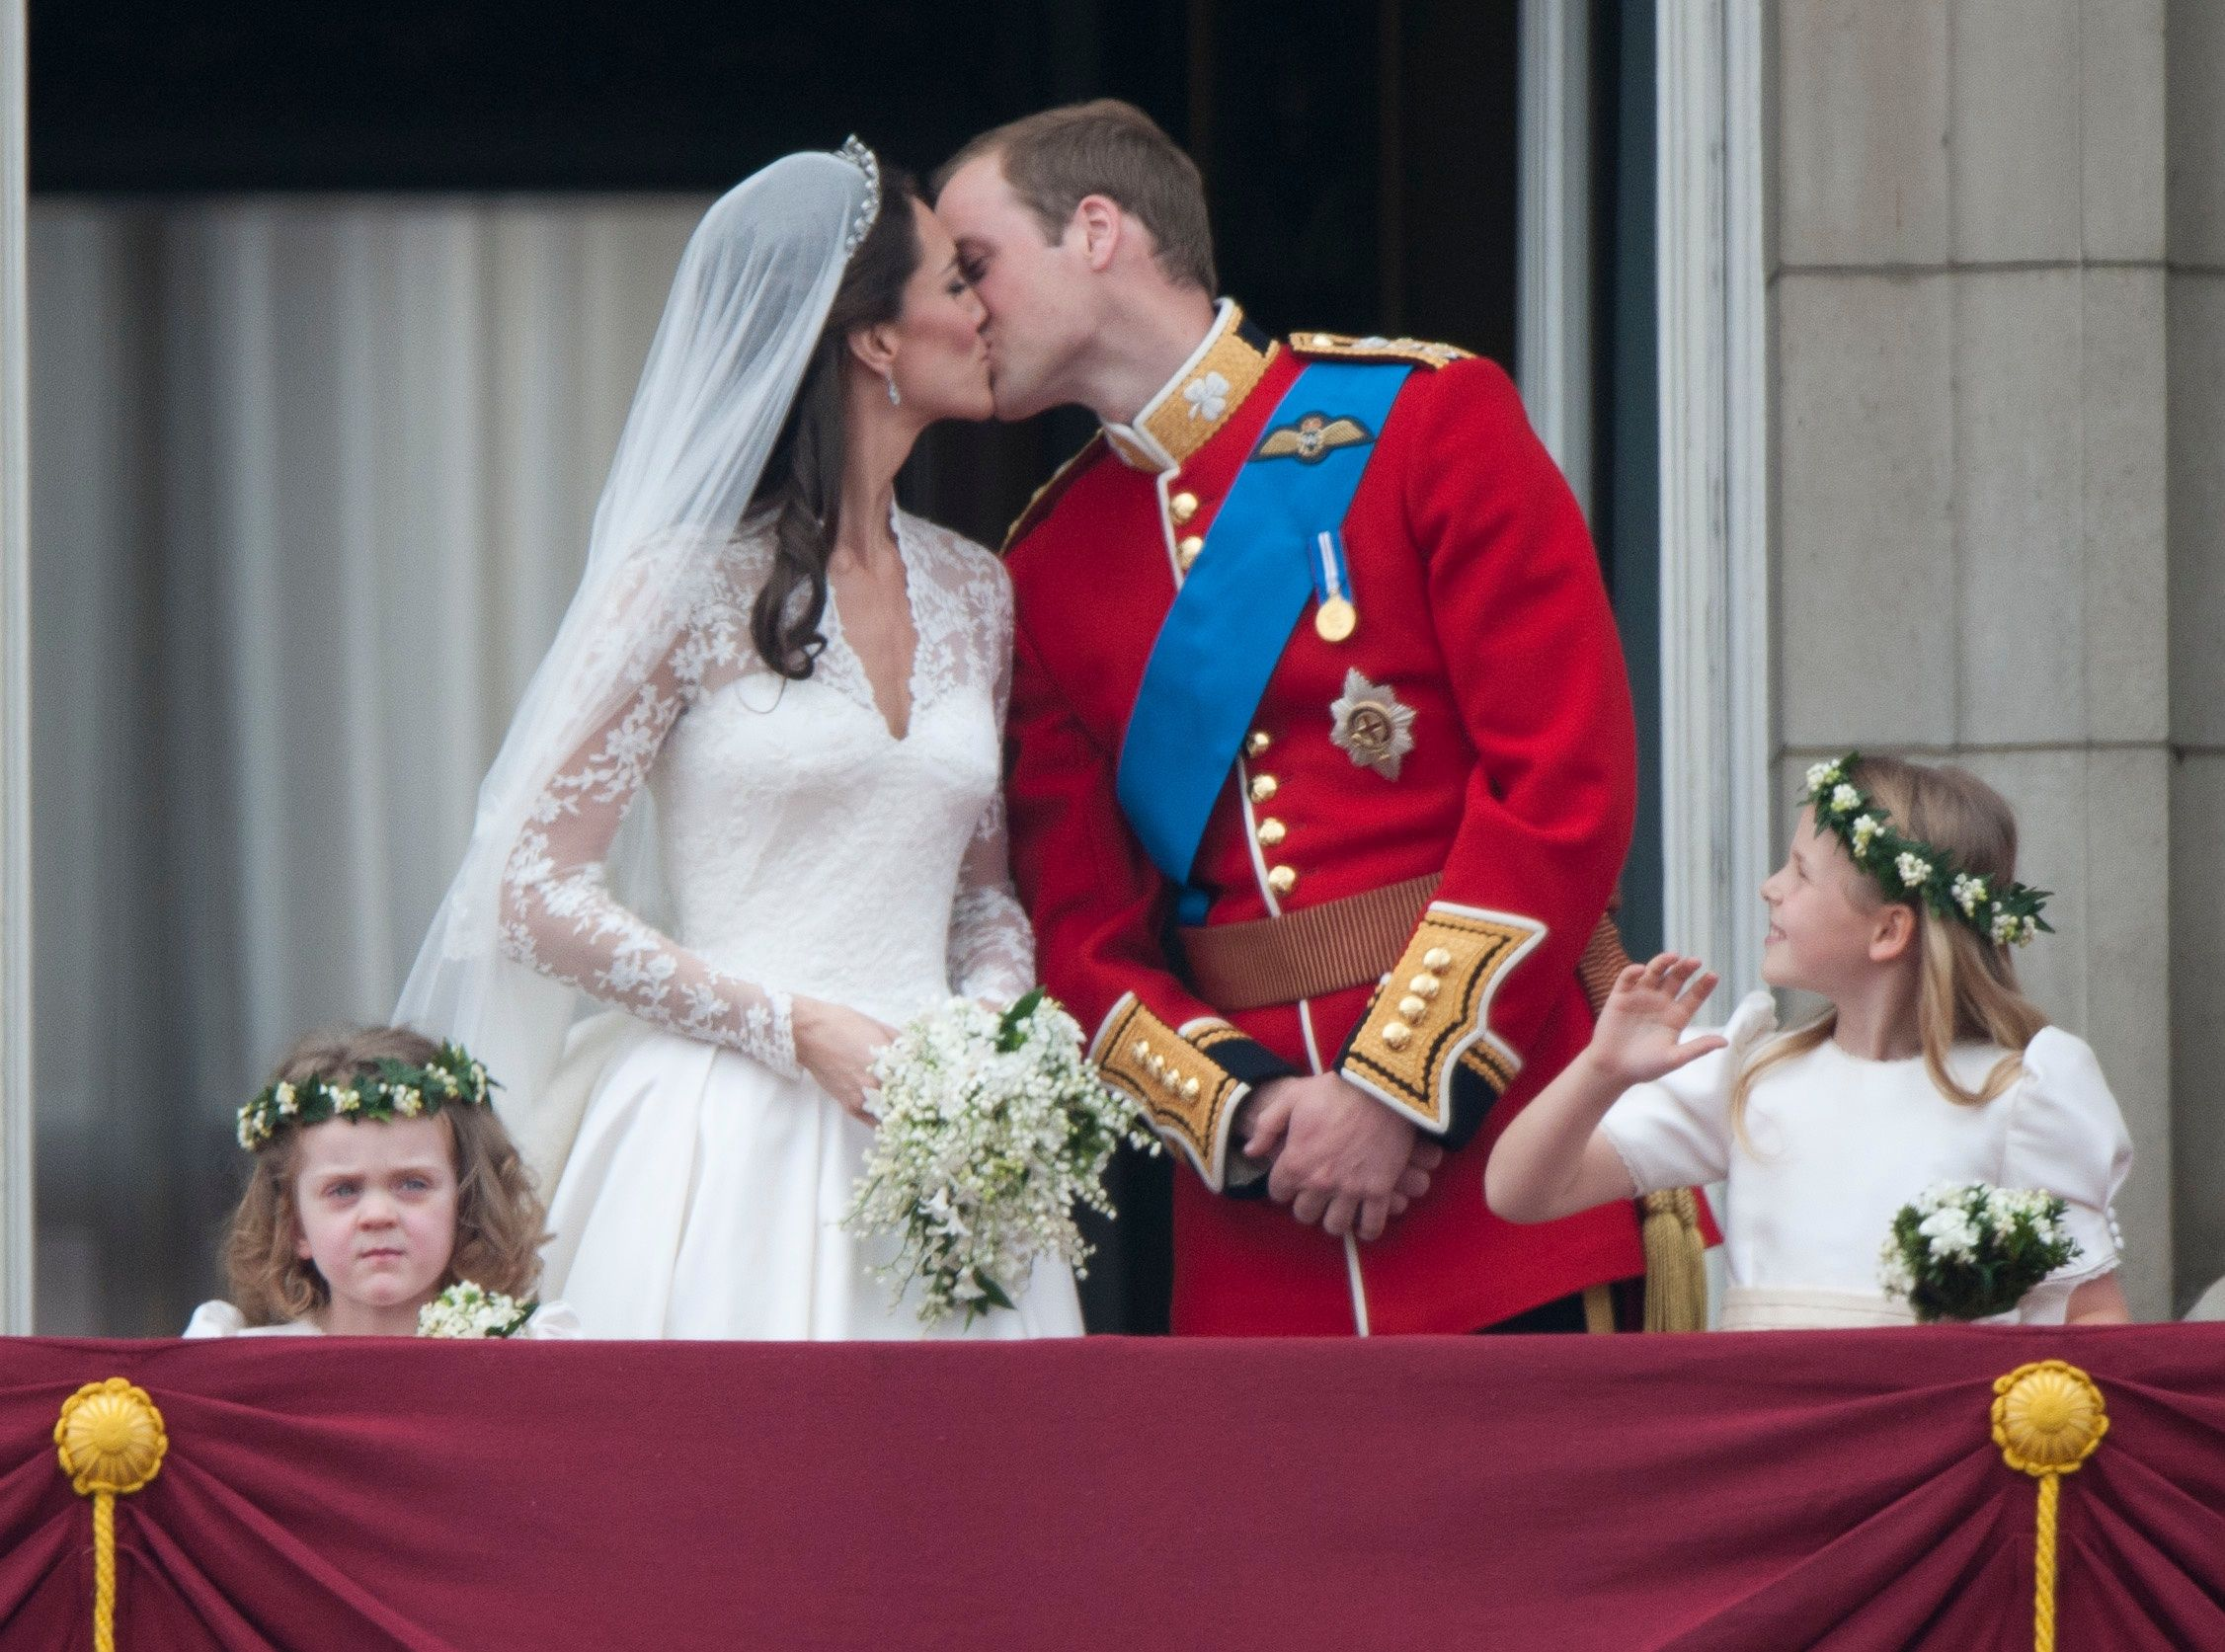 Royal Marriage Traditions - Strict Rules the Royal Family Must Follow